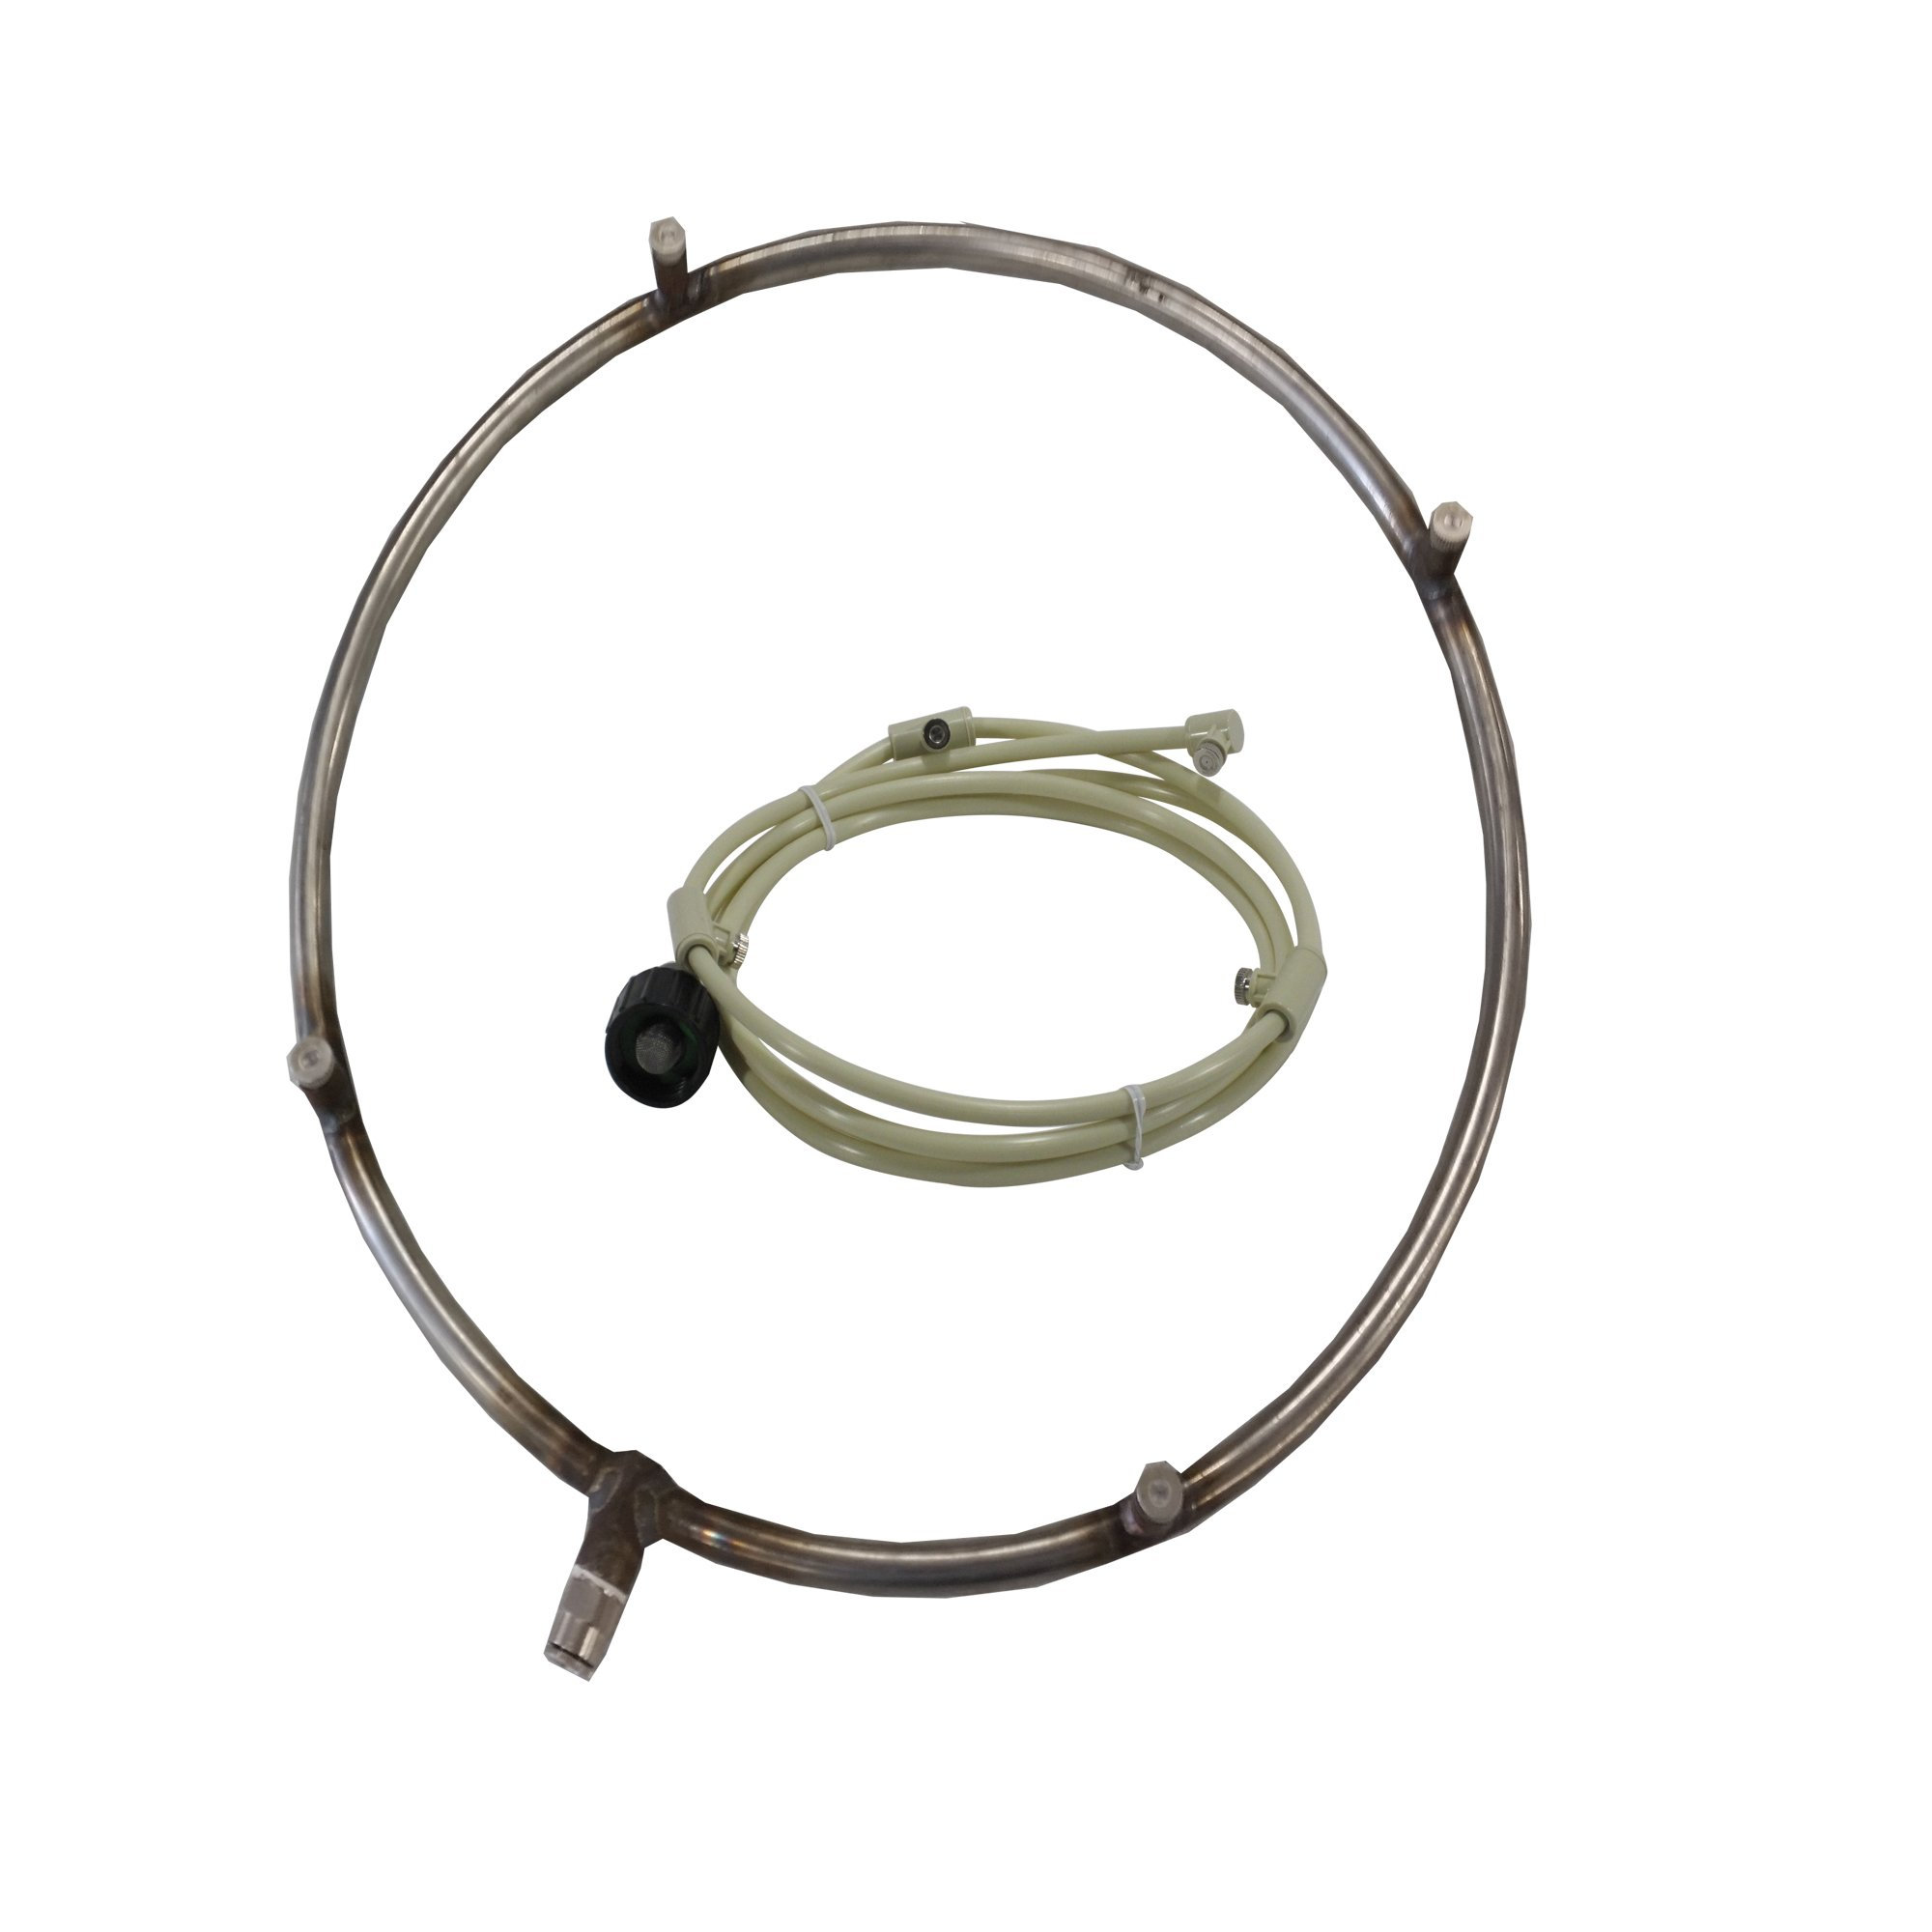 Mistcooling Misting Fan Ring - Stainless Steel Ring with Feed Line and Misting Nozzles - Ideal as Patio Misting system, for Warehouse Misting. can be used with Pump. (12'' Dia 4 Nozzles 6ft Line) by Mistcooling